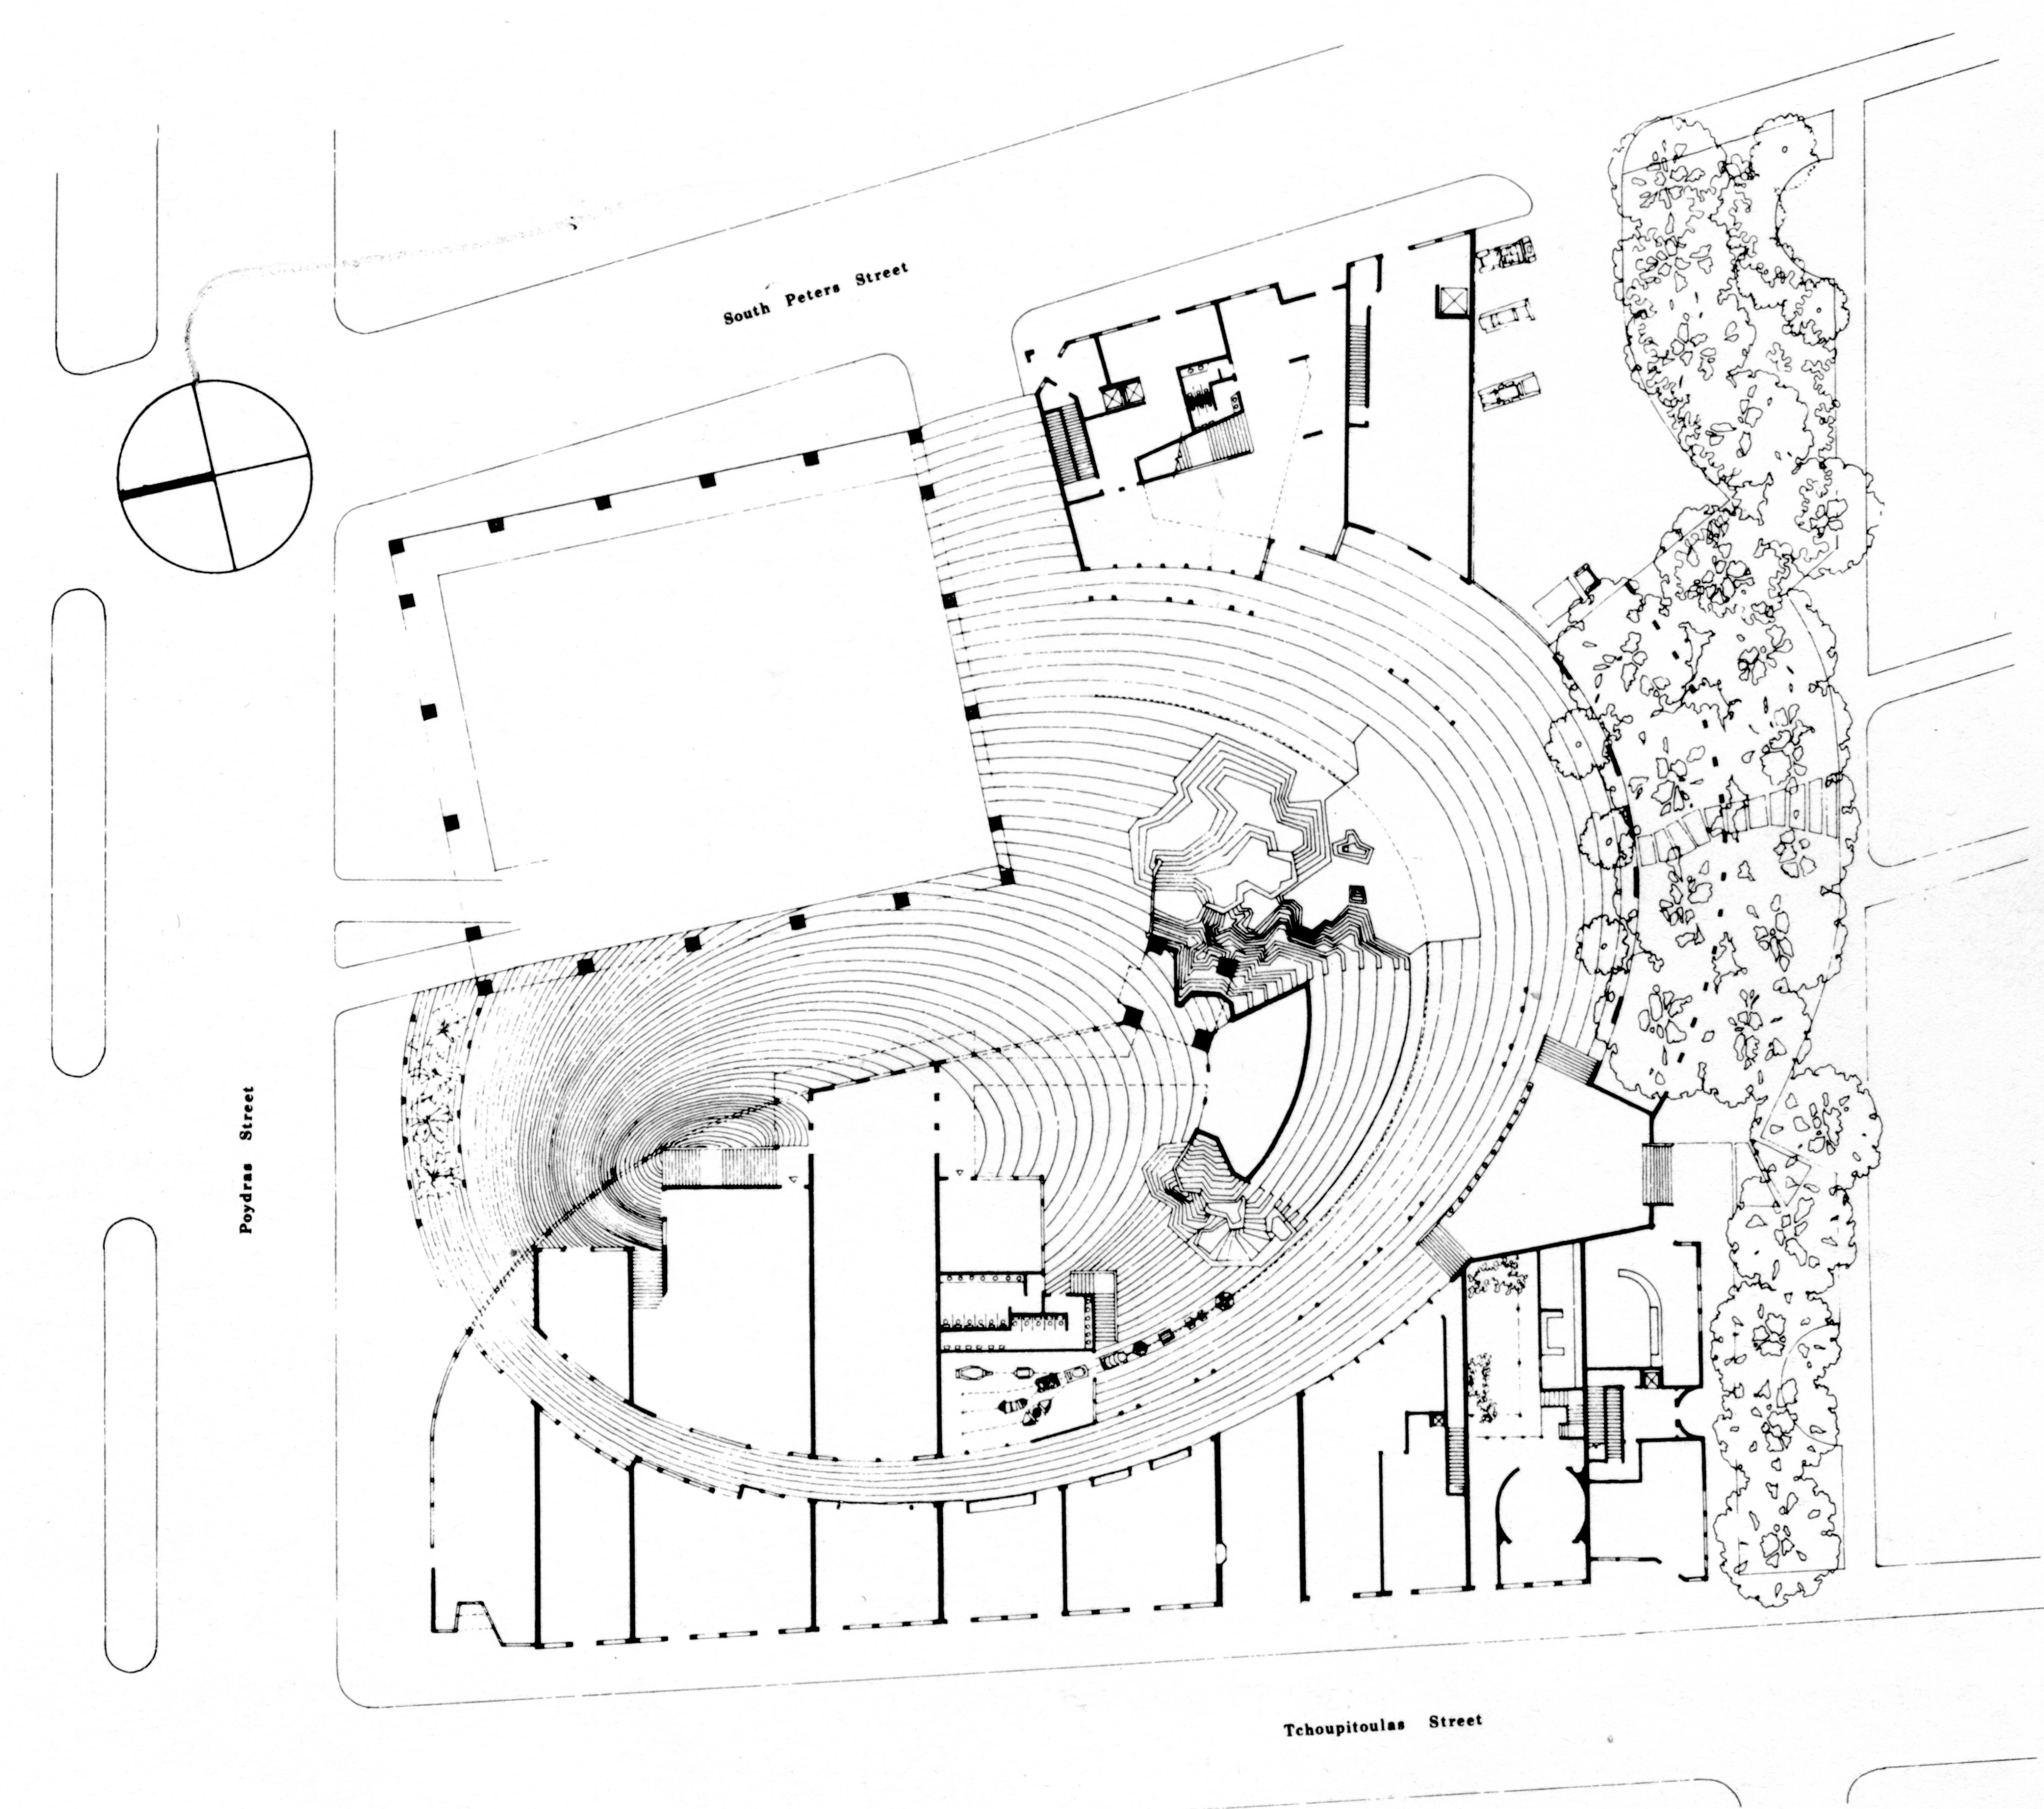 4372x3870 Site Plan For Urban Innovations' (Charles Moore, Principal